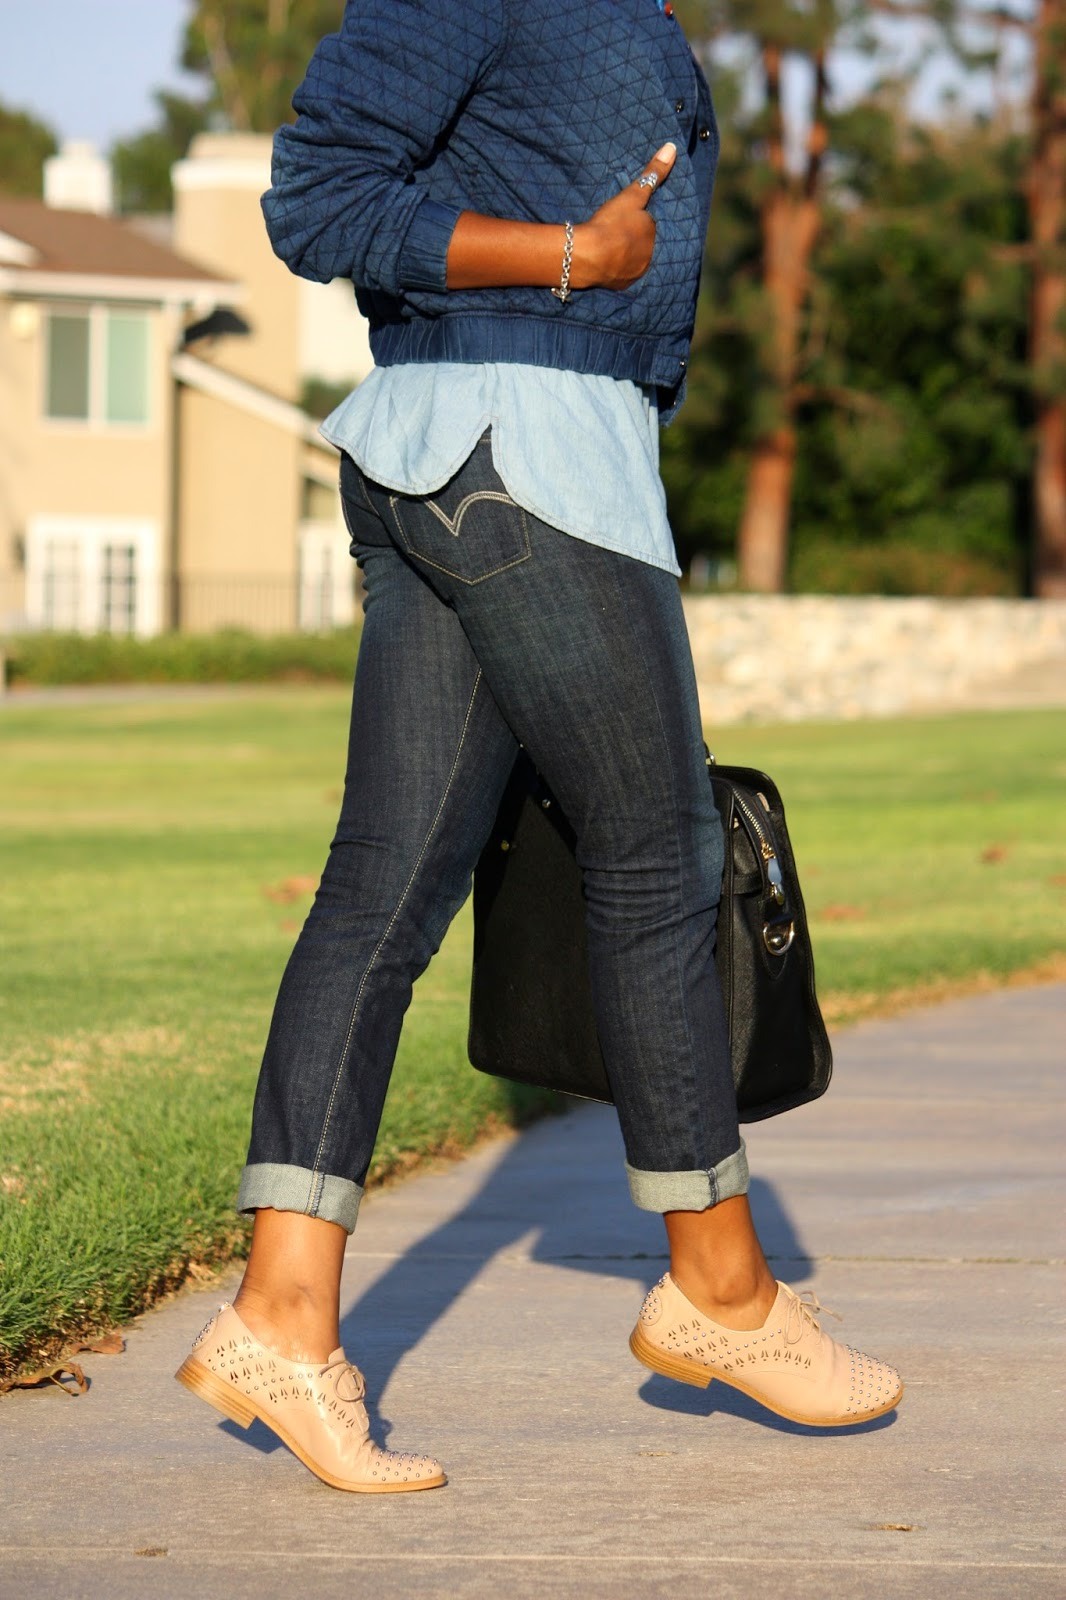 Honey In My Heels wearing Levi's jeans and Sam Edelman oxfords